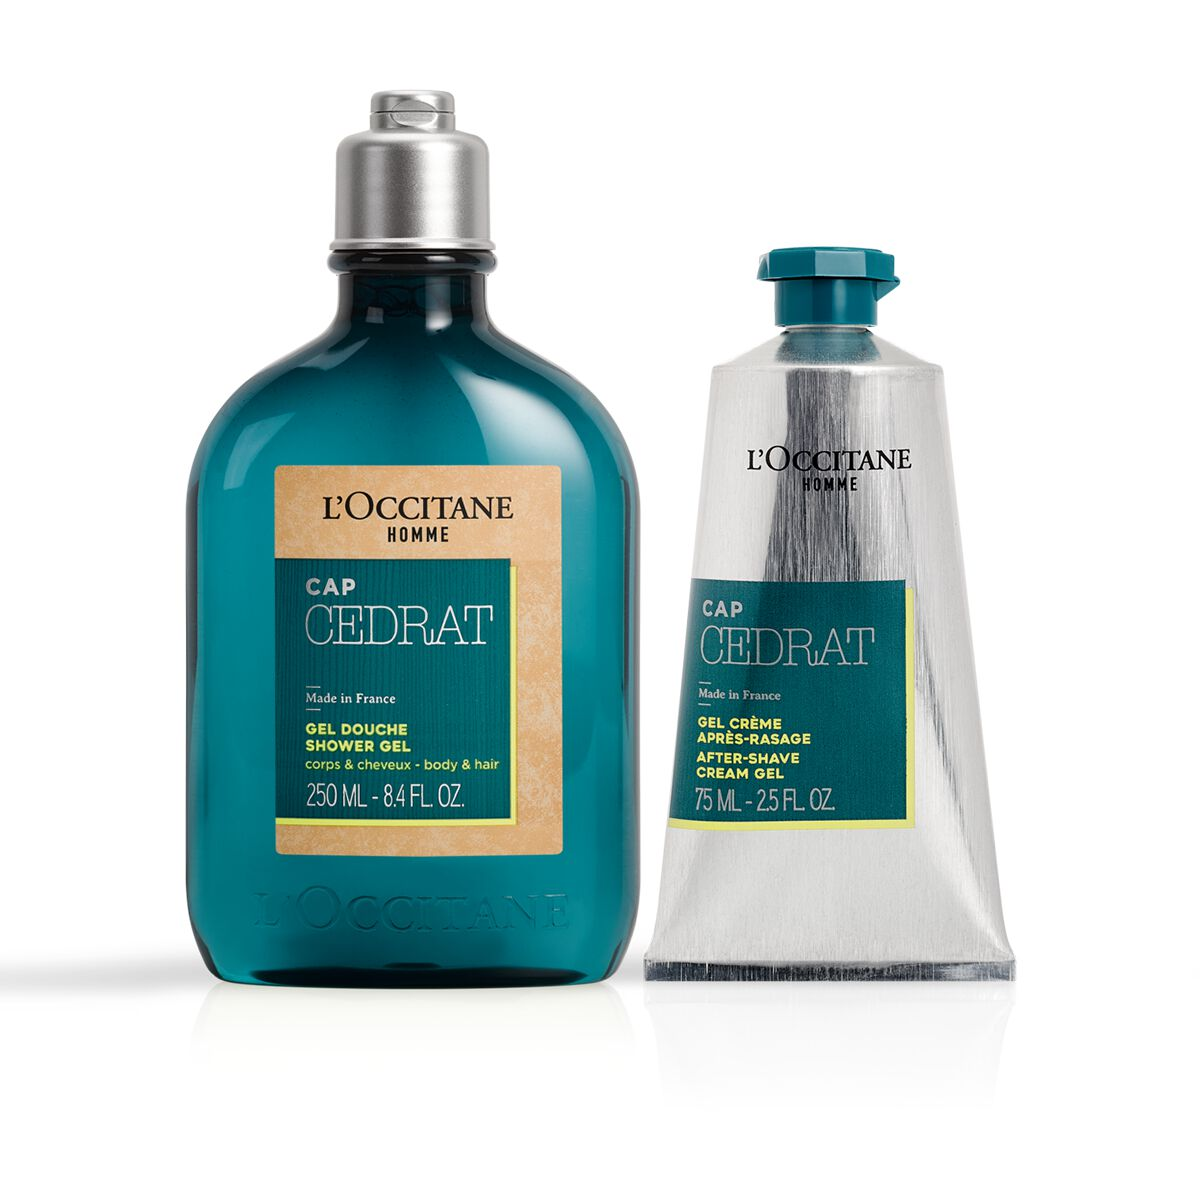 Cap Cedrat Shower and After-Shave Duo from L'OCCITANE